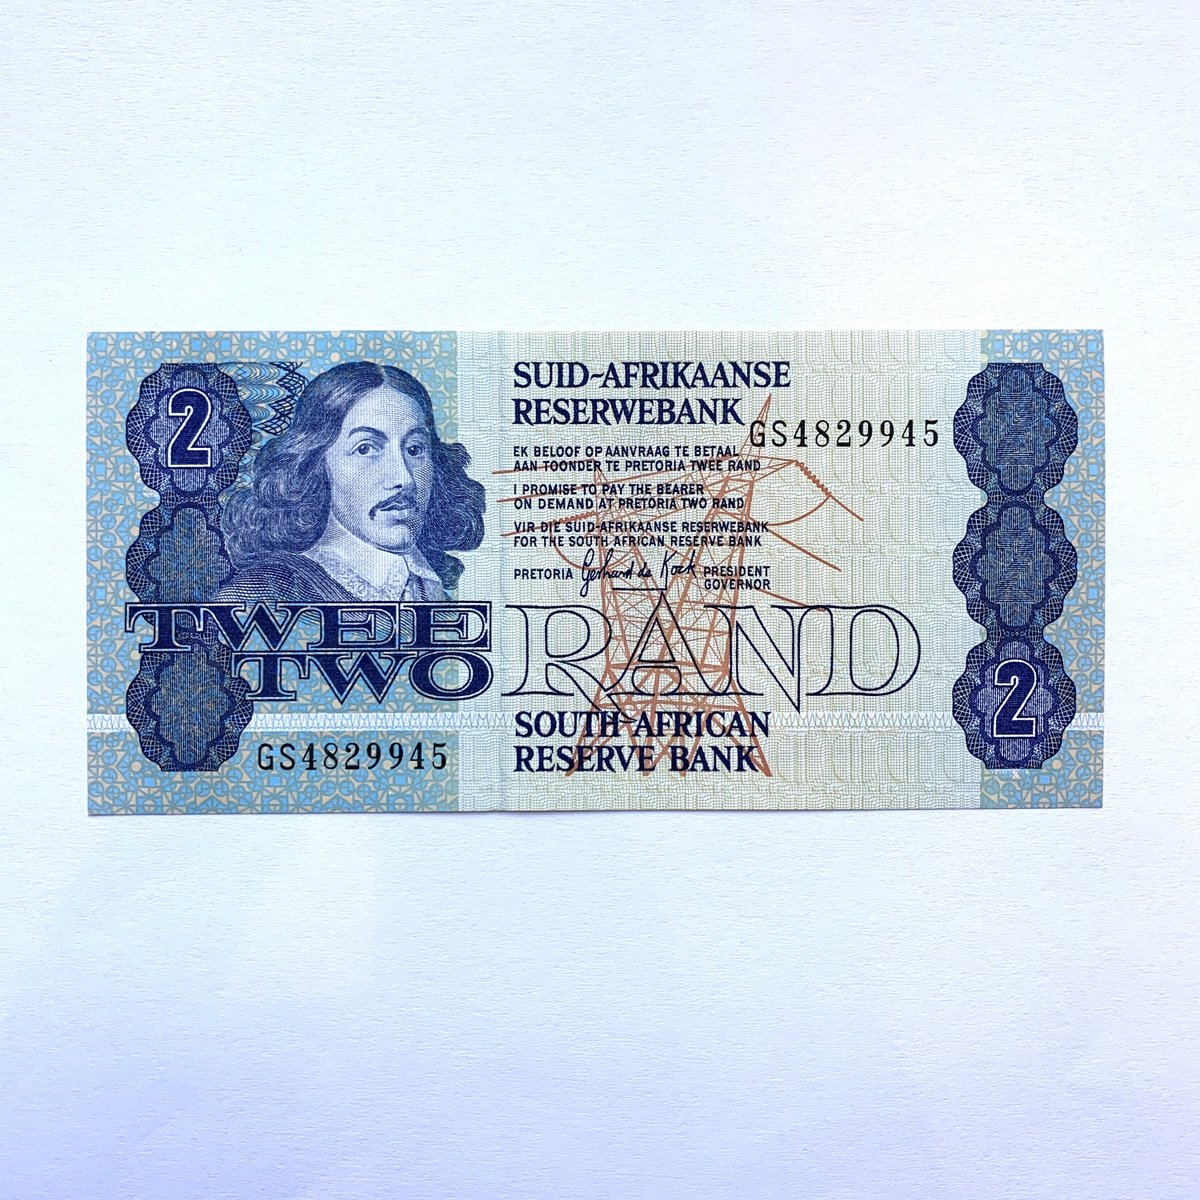 Thanks for the great review Erik D. ★★★★★!  #etsy #southafrica #southafrican #banknote #currency #note #bills #rand #janvanriebeek #mandela